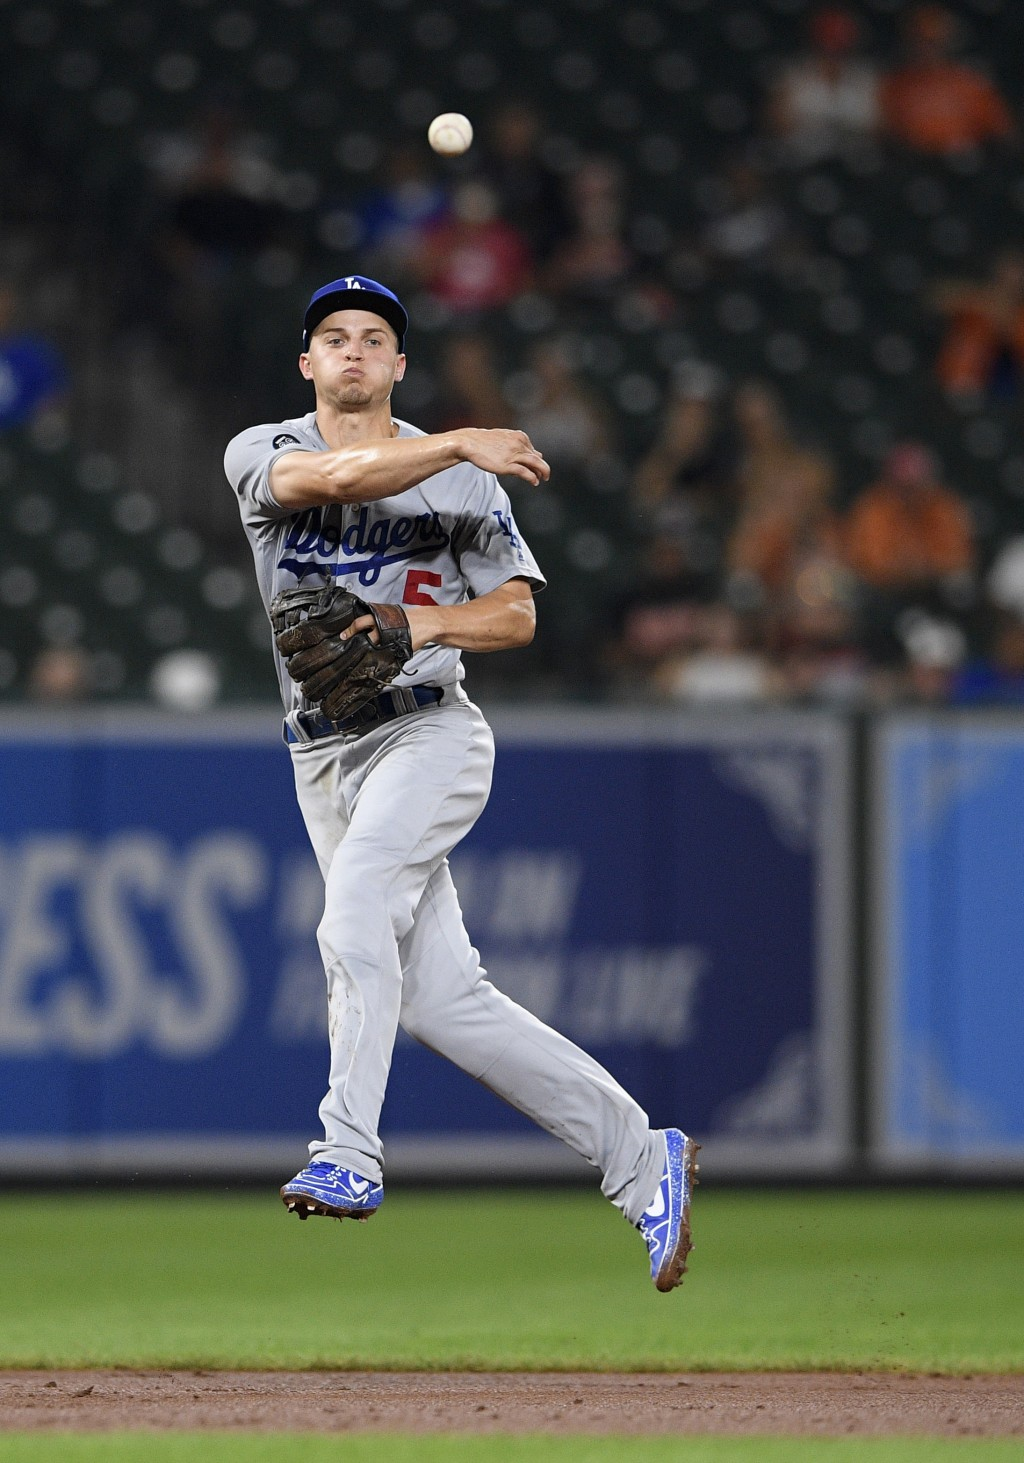 Los Angeles Dodgers shortstop Corey Seager throws to first to get out Baltimore Orioles' Dwight Smith Jr. during the fourth inning of a baseball game